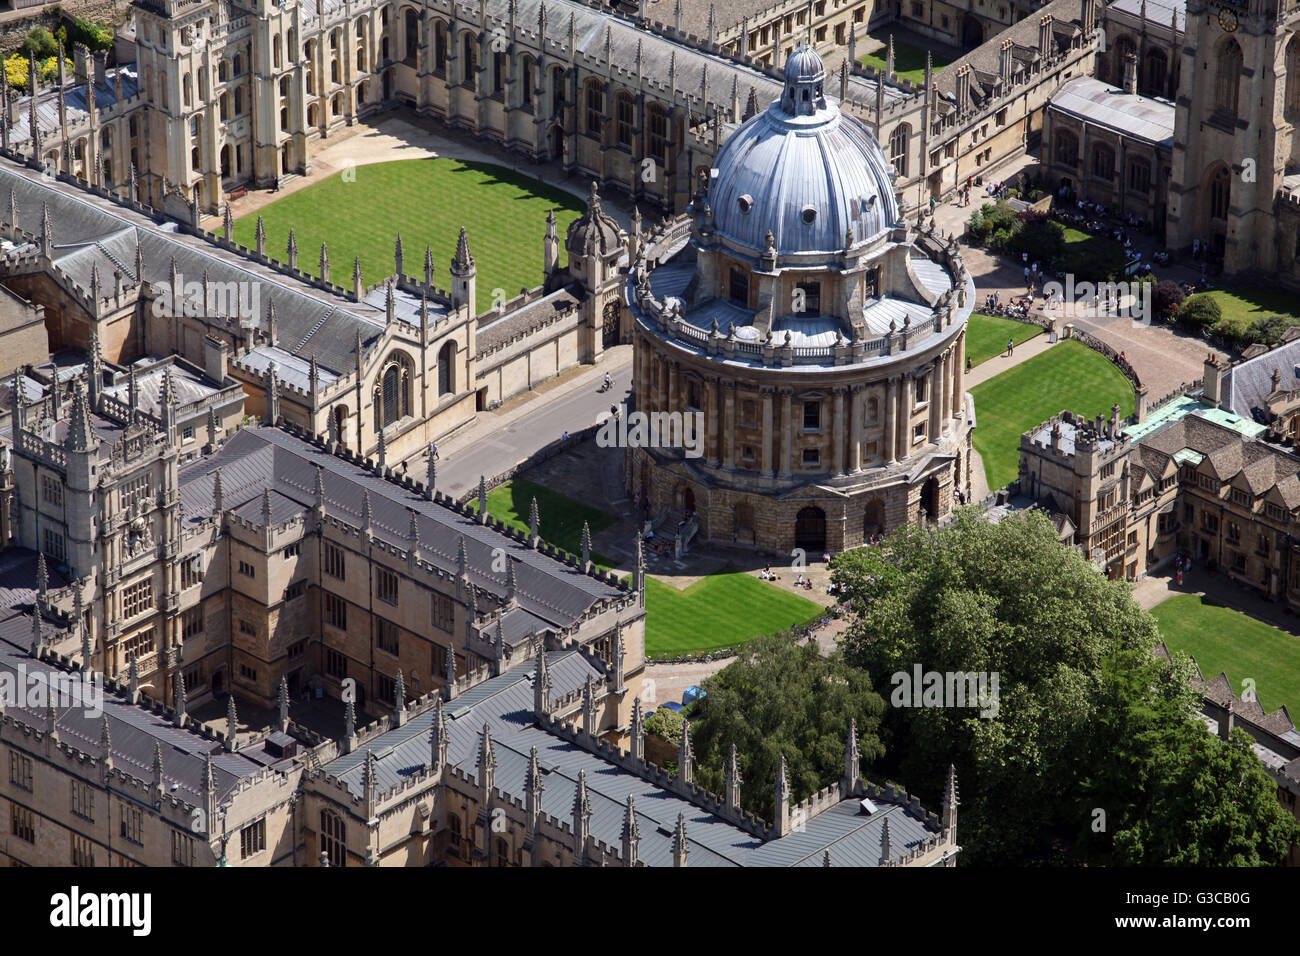 aerial view of the Radcliffe Camera & Bodleian Library, Oxford University, UK - Stock Image